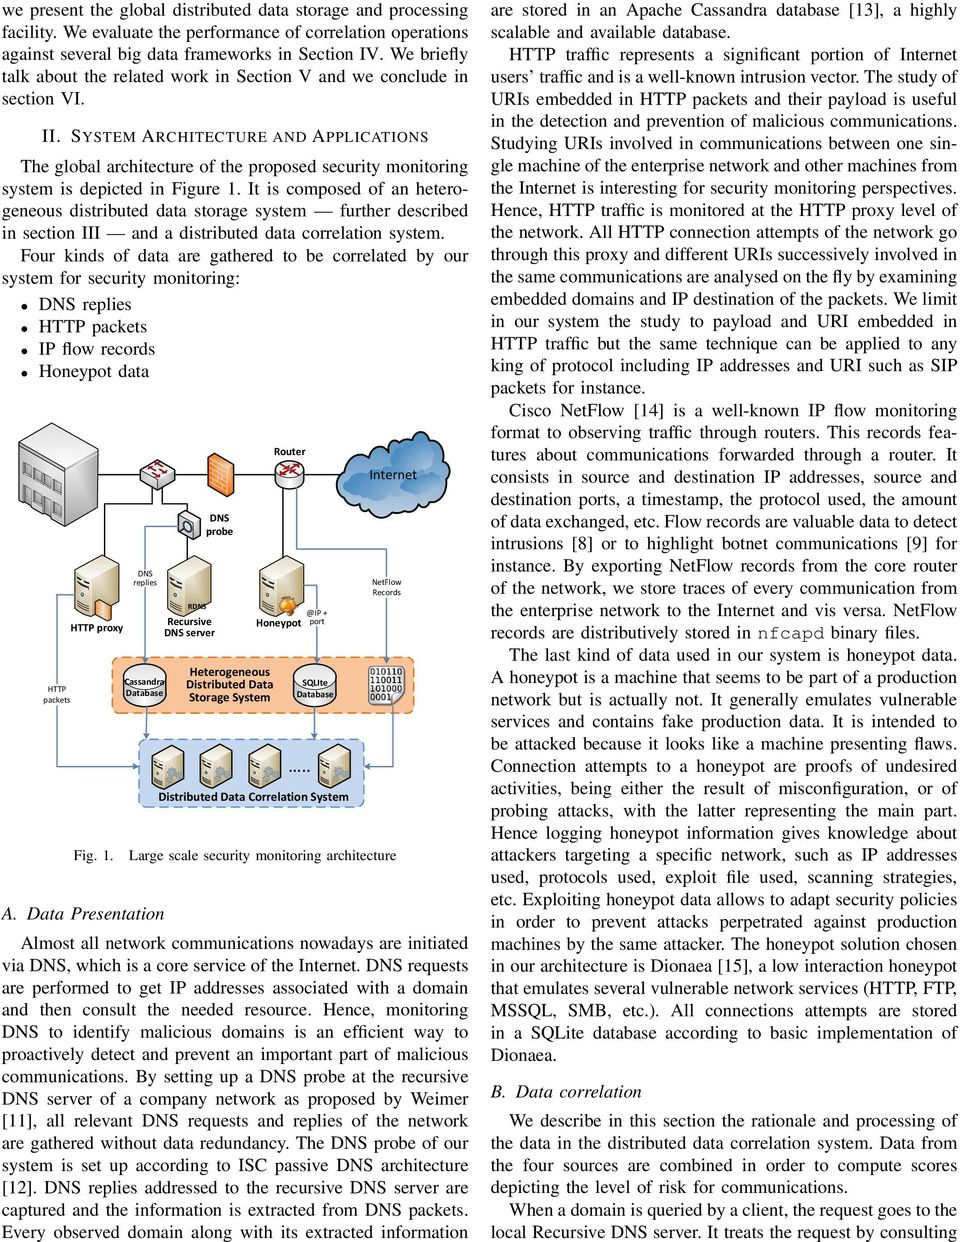 SYSTEM ARCHITECTURE AND APPLICATIONS The global architecture of the proposed security monitoring system is depicted in Figure 1.